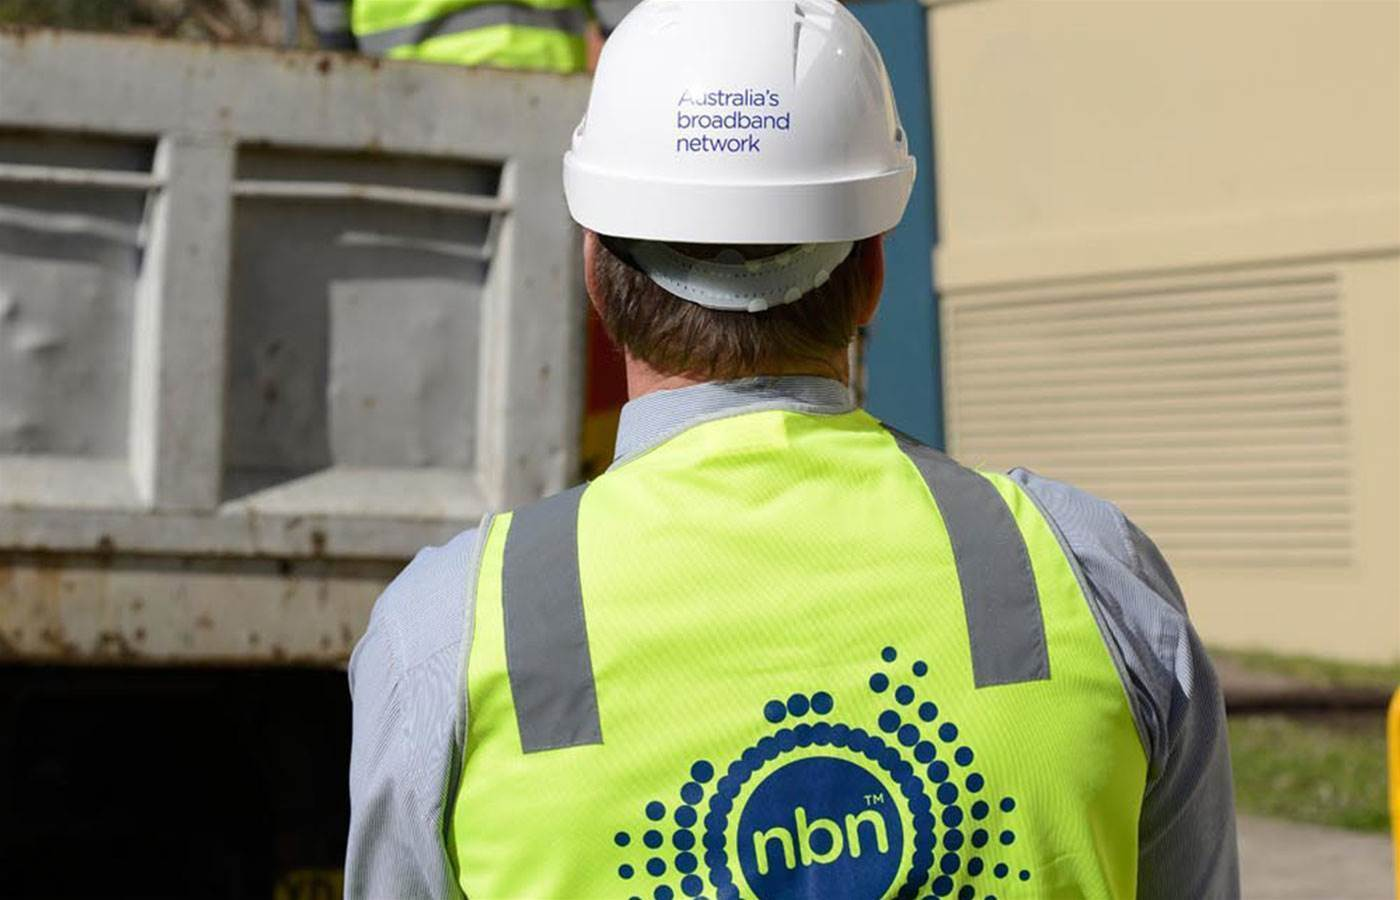 NBN Co says scammers are impersonating its staff